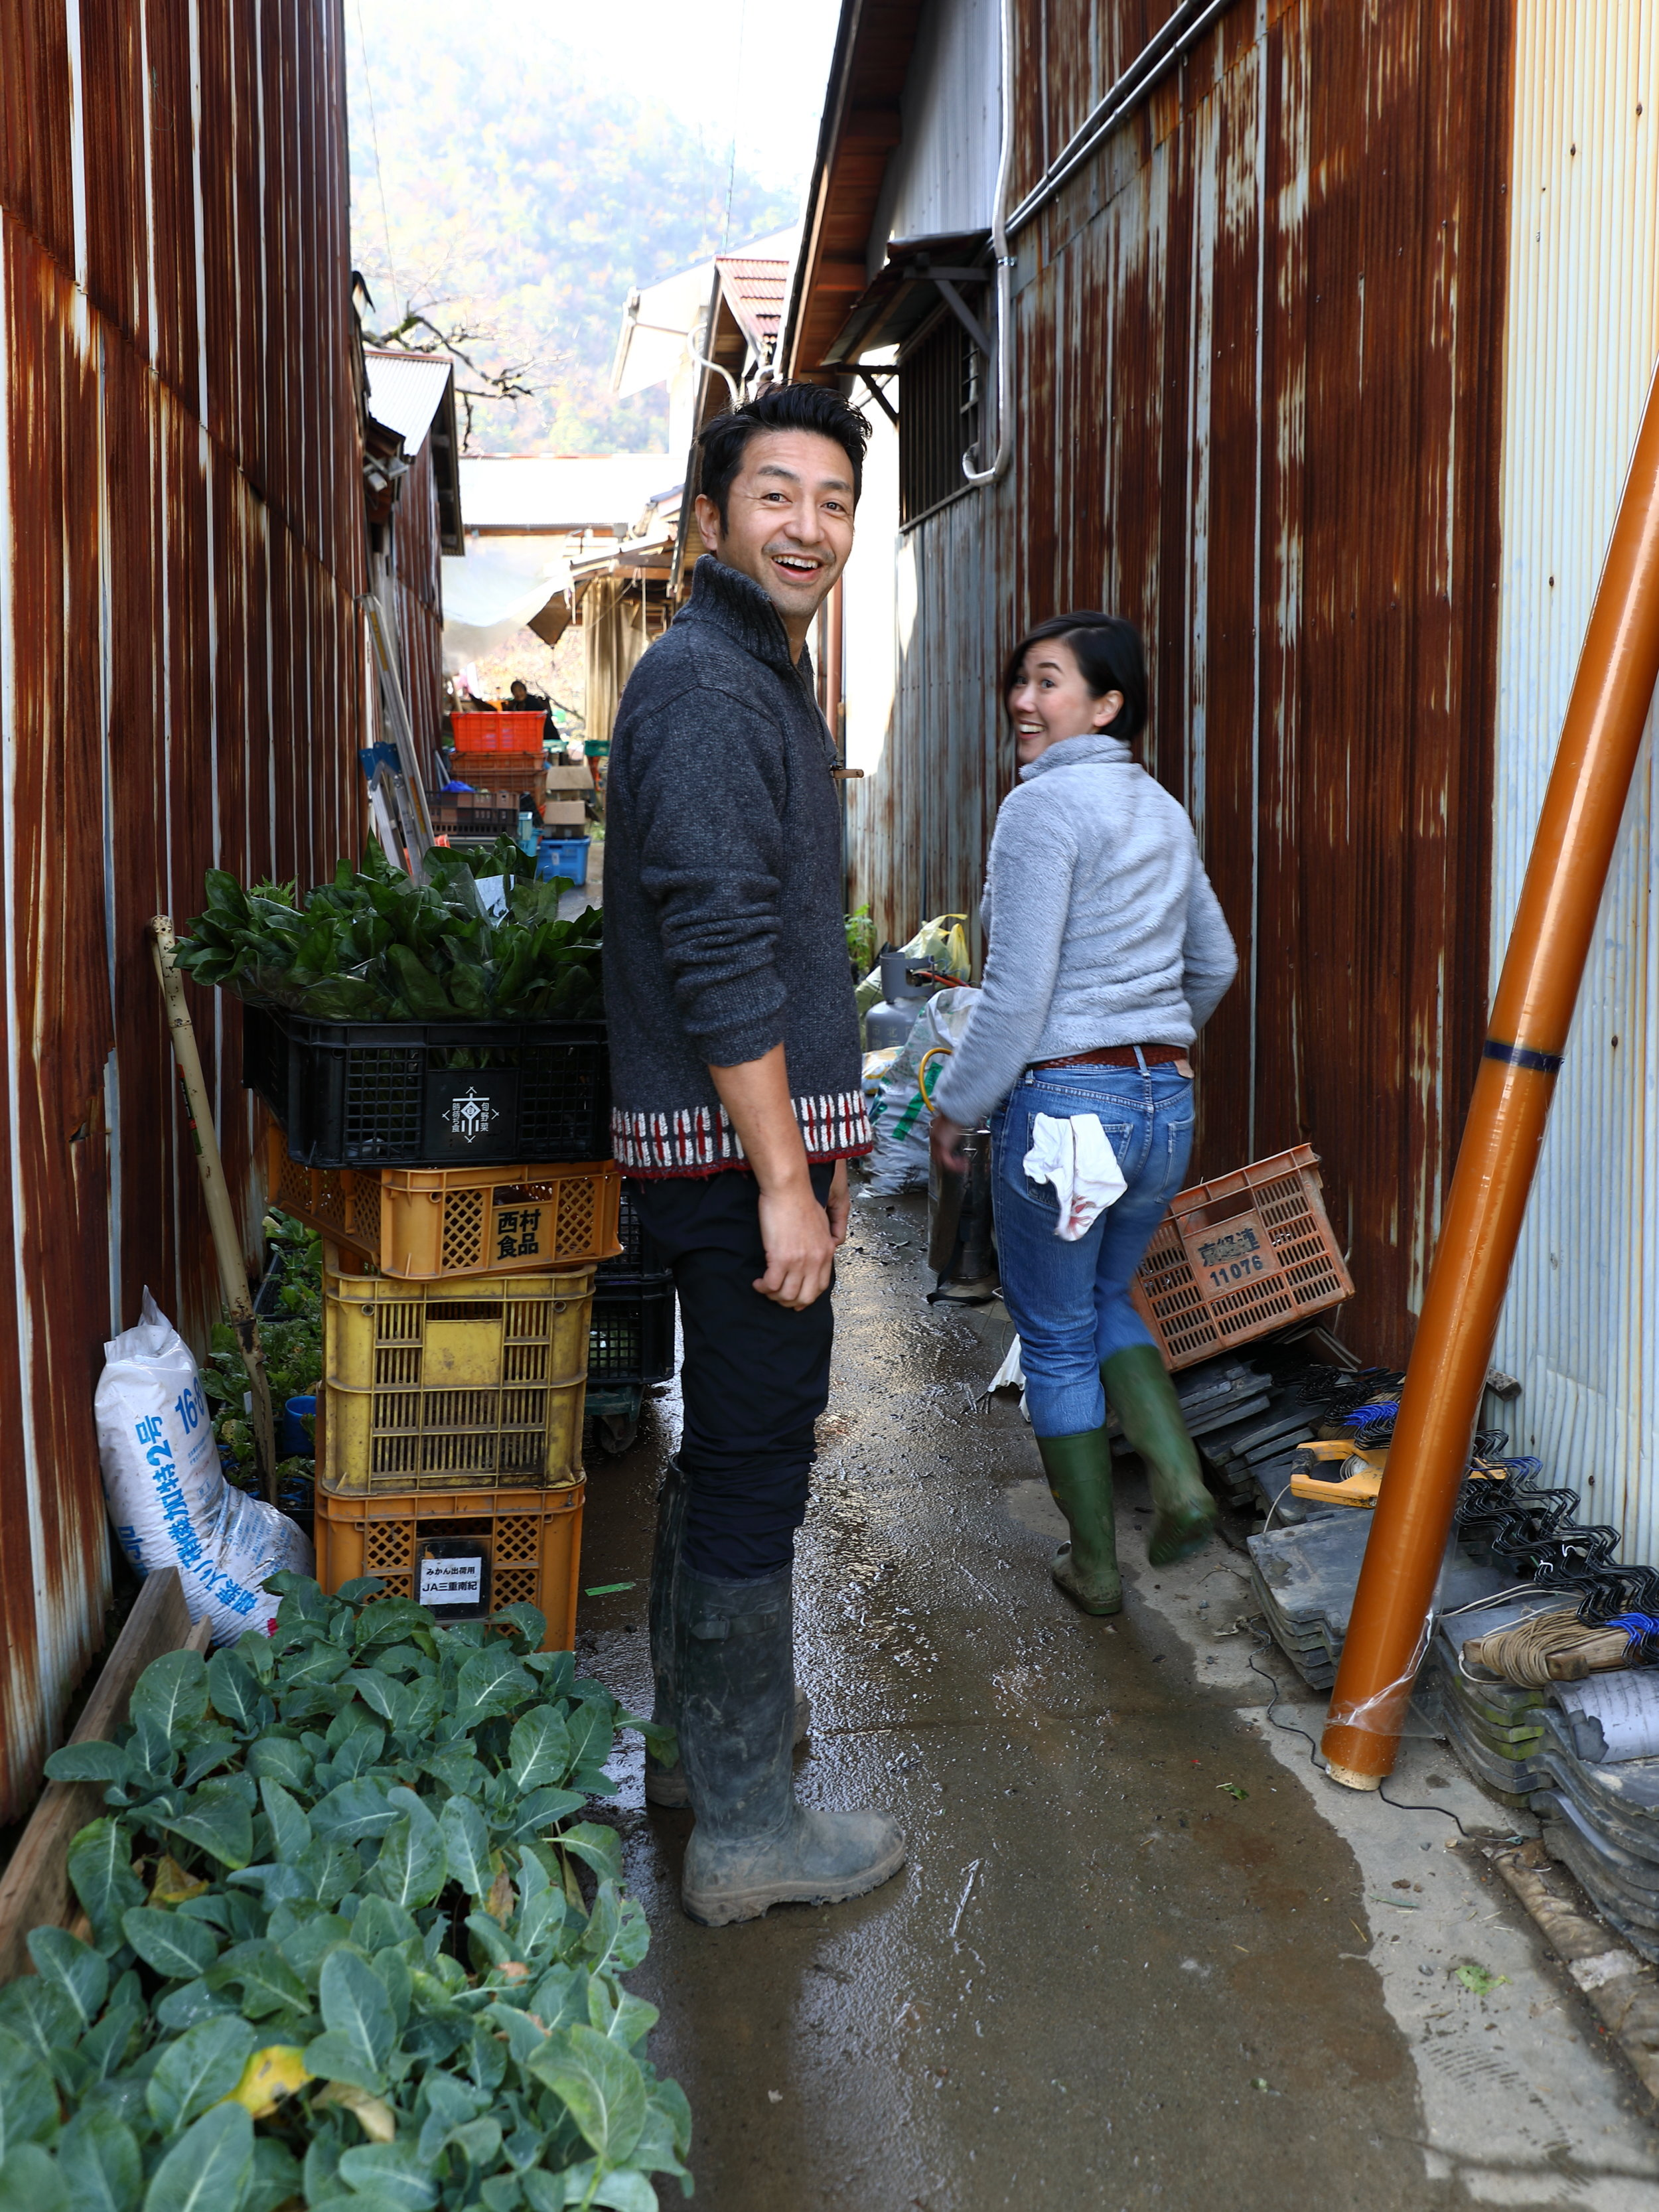 Shigeru starts each day by harvesting vegetables and gaining inspiration at Higuchi Farm across the road from the restaurant.